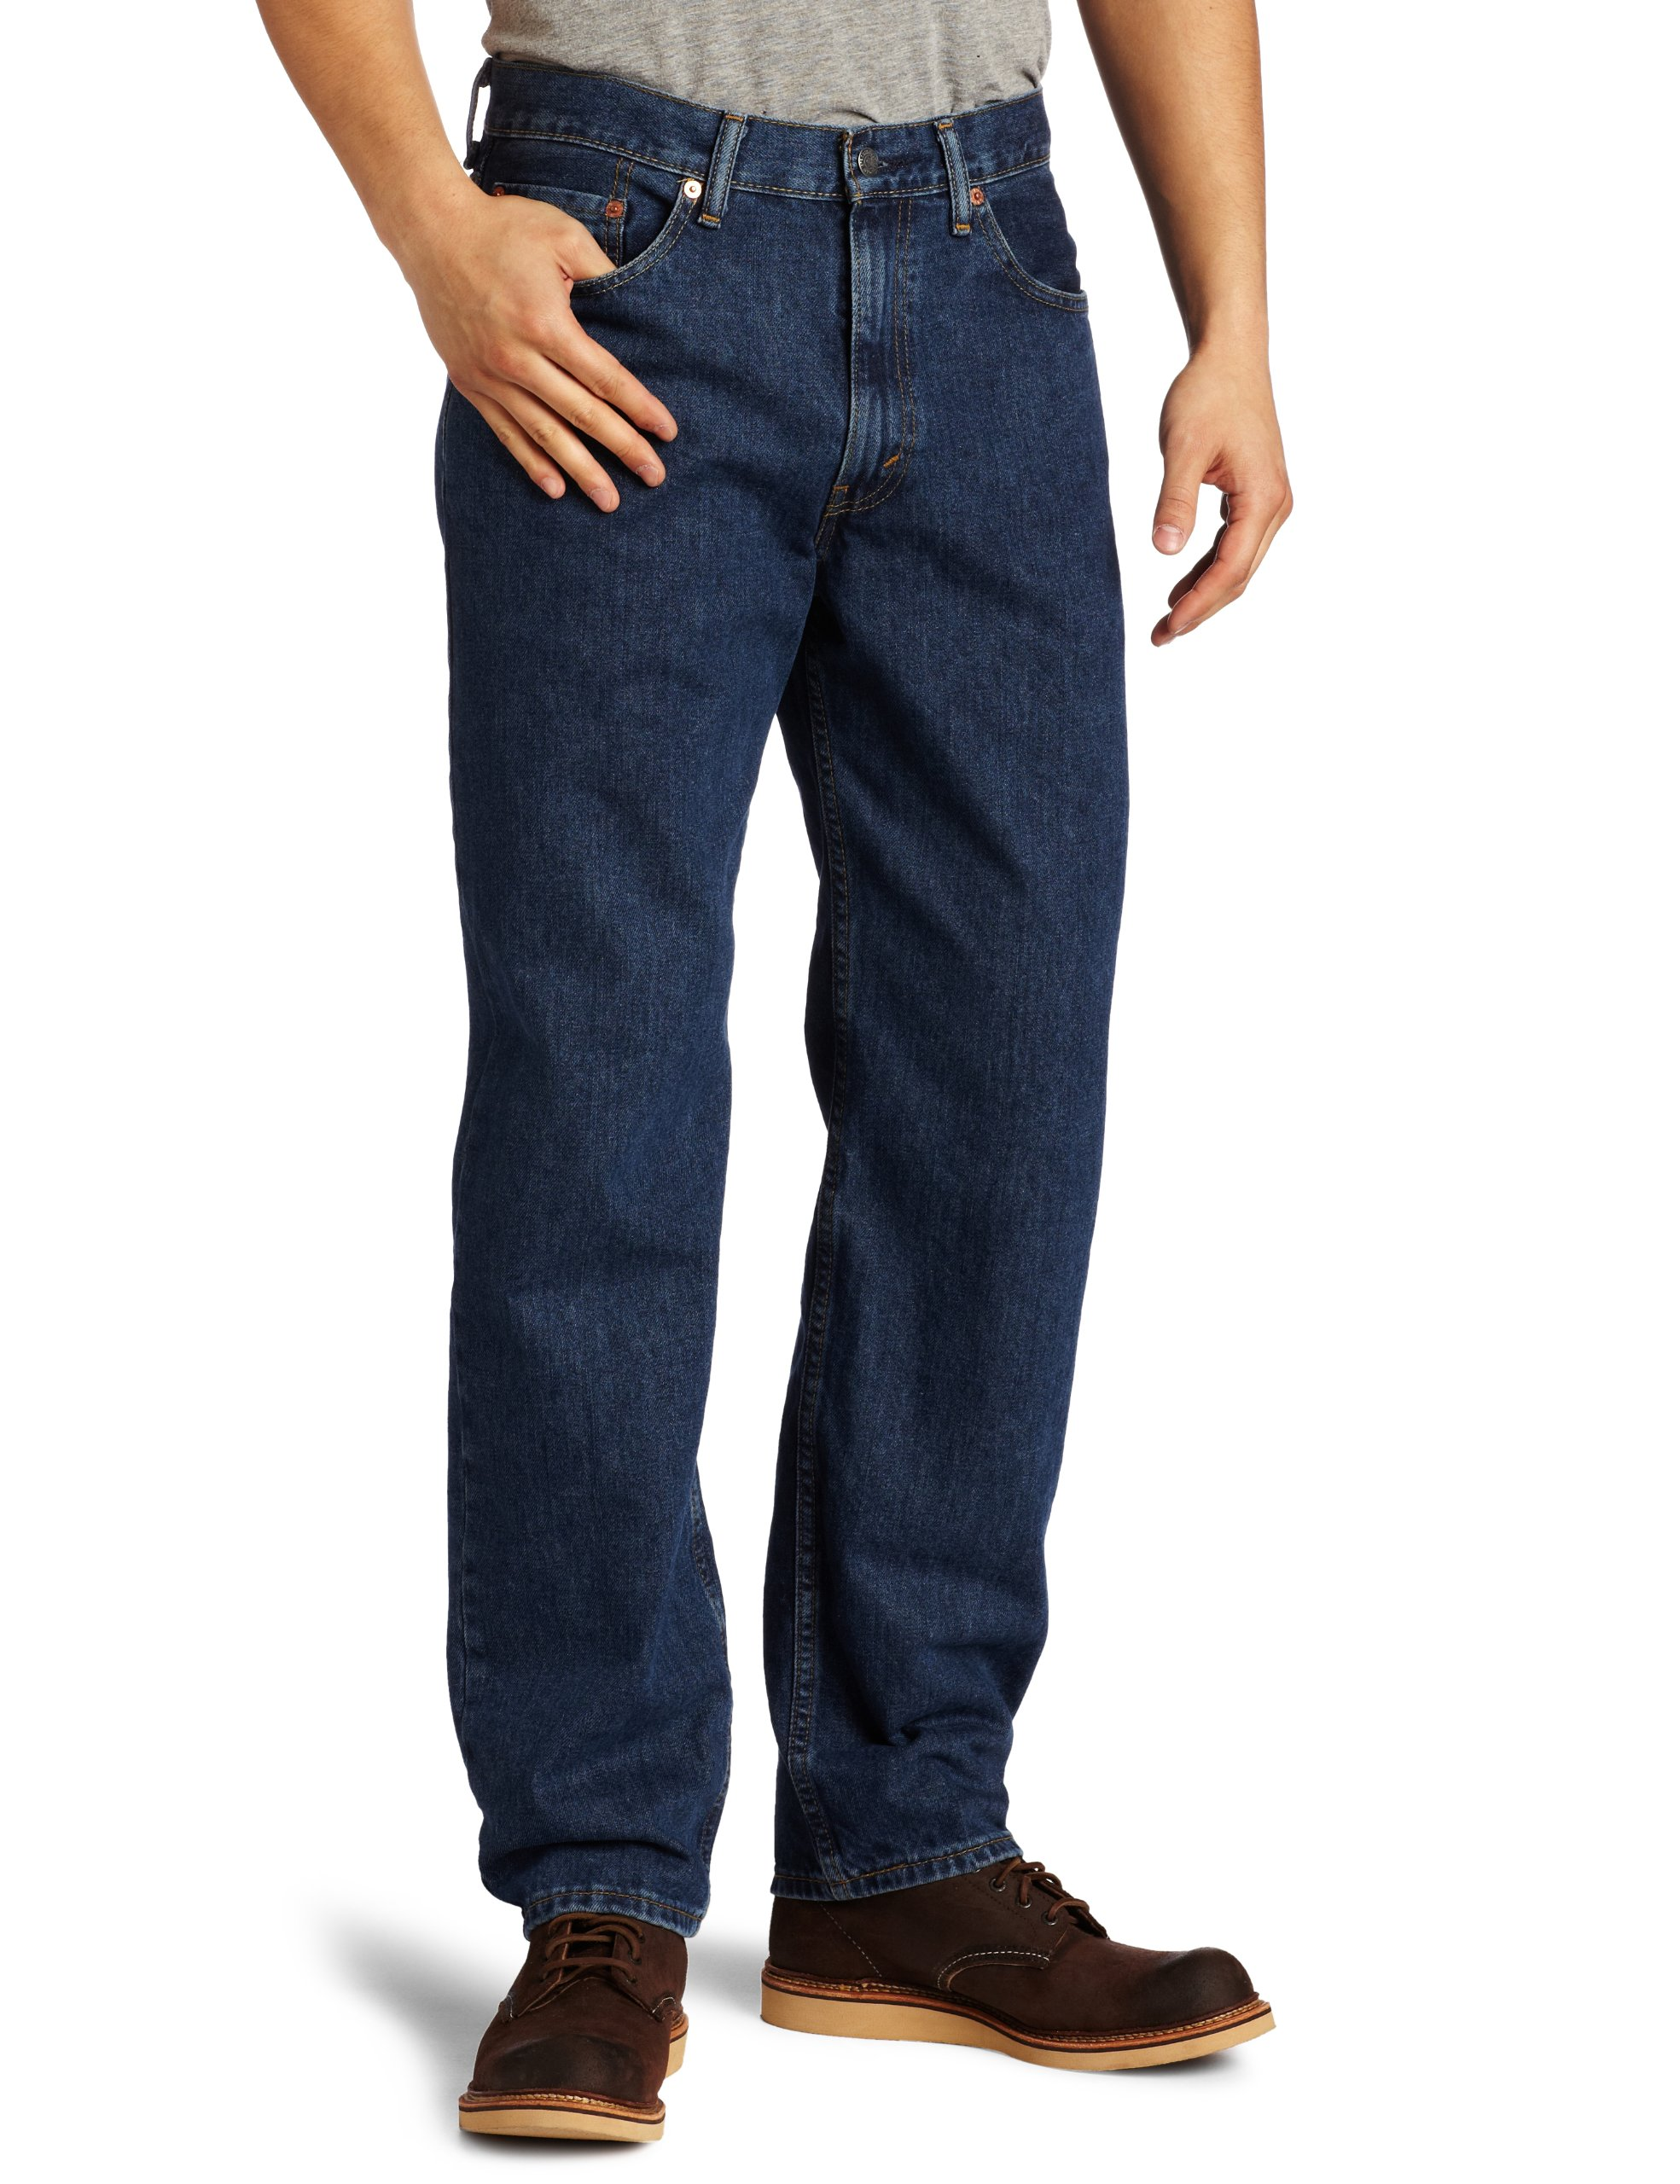 Levi's Men's 550 Relaxed Fit Jean, Dark Stonewash, 36x32